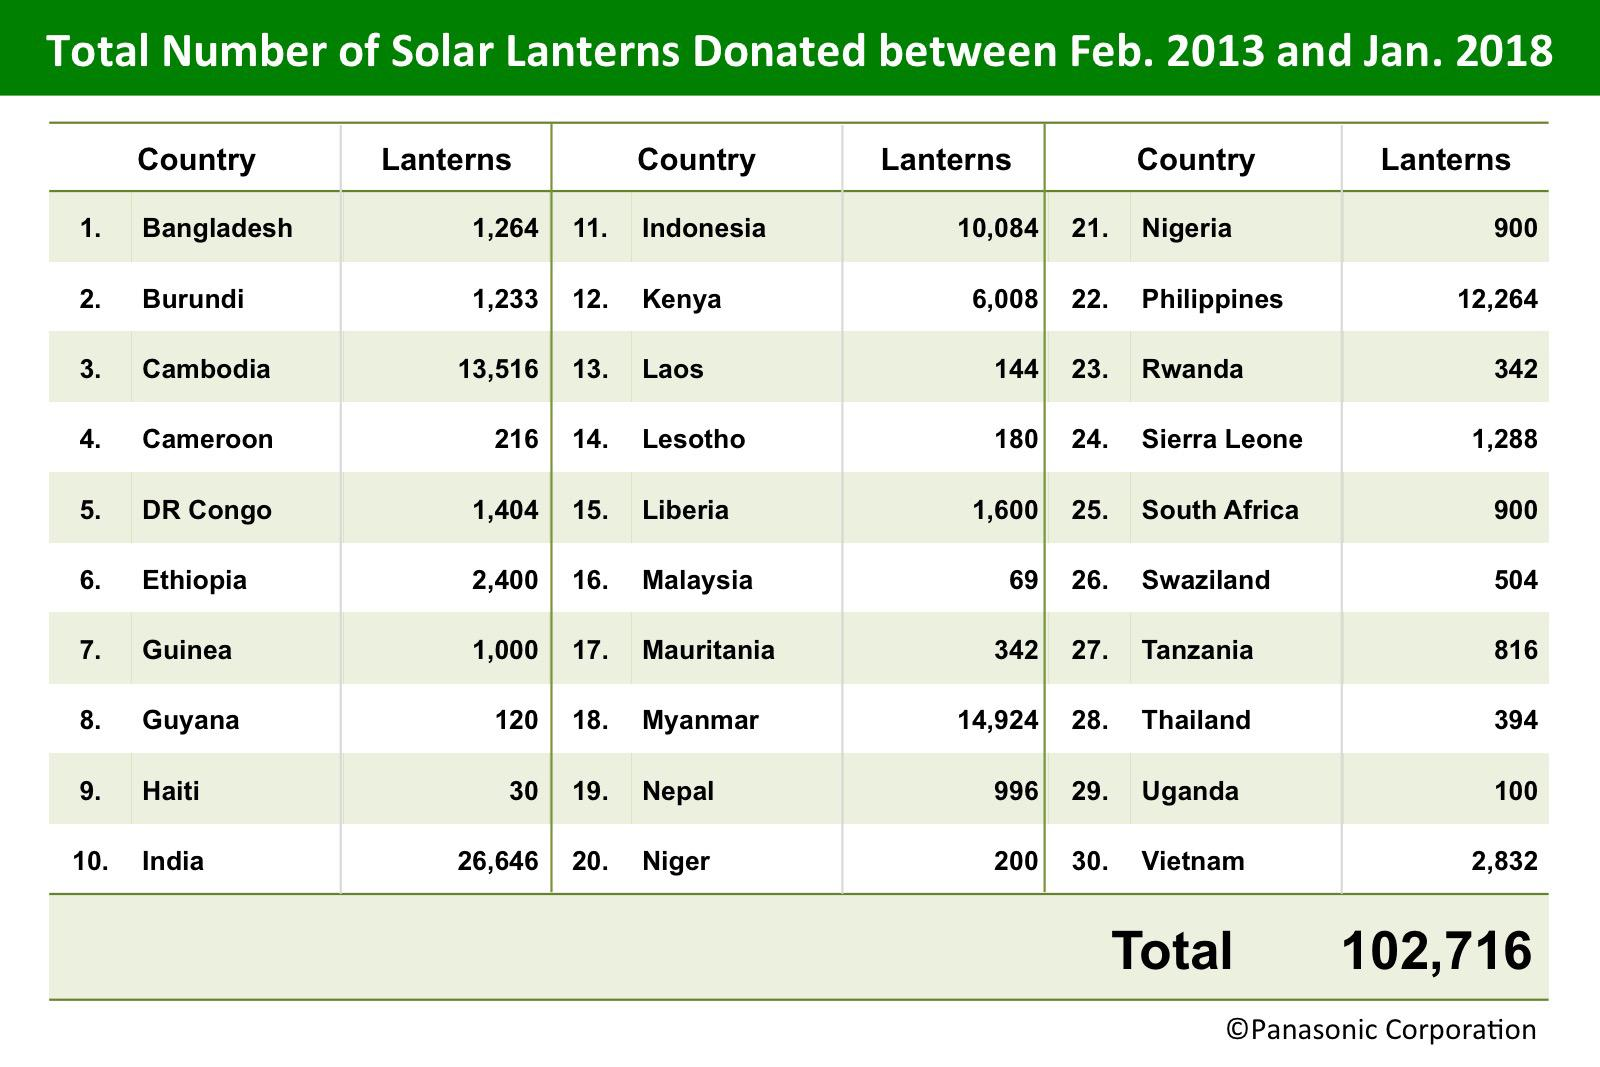 table: total number of solar lanterns donated between 2013-2018